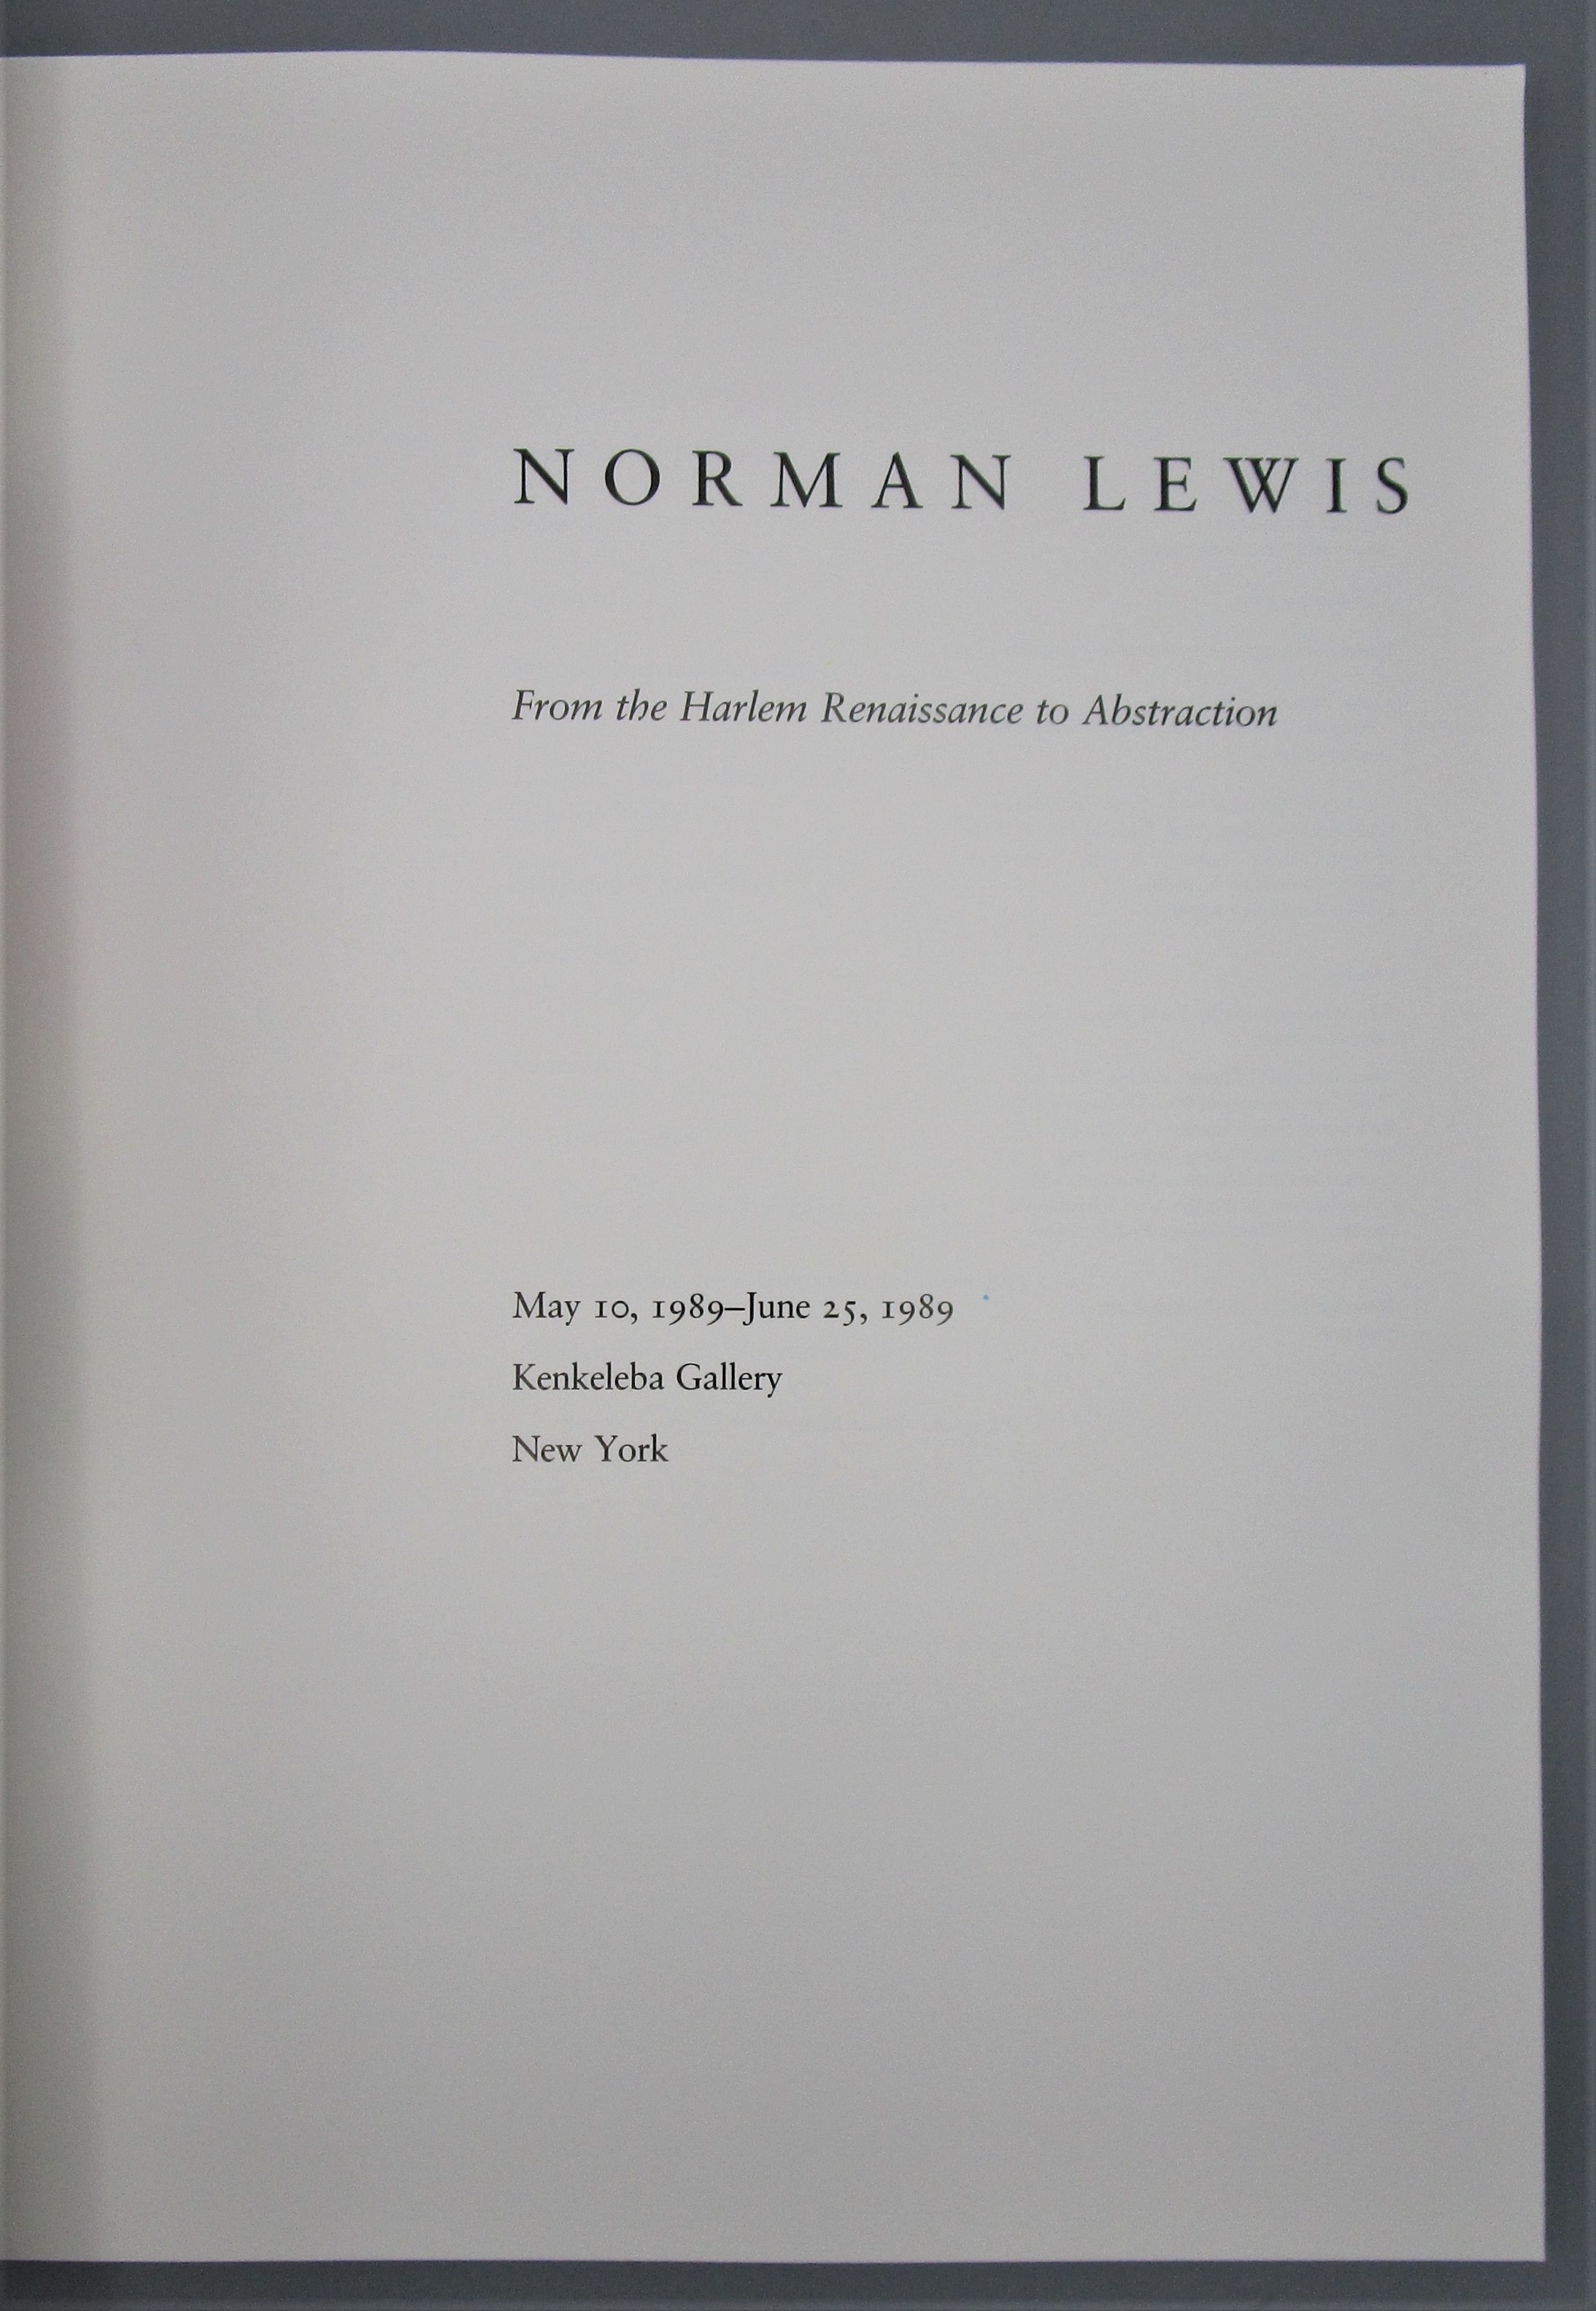 NORMAN LEWIS: FROM THE HARLEM RENAISSANCE TO ABSTRACTION, by Kenkeleba Gallery - 1989